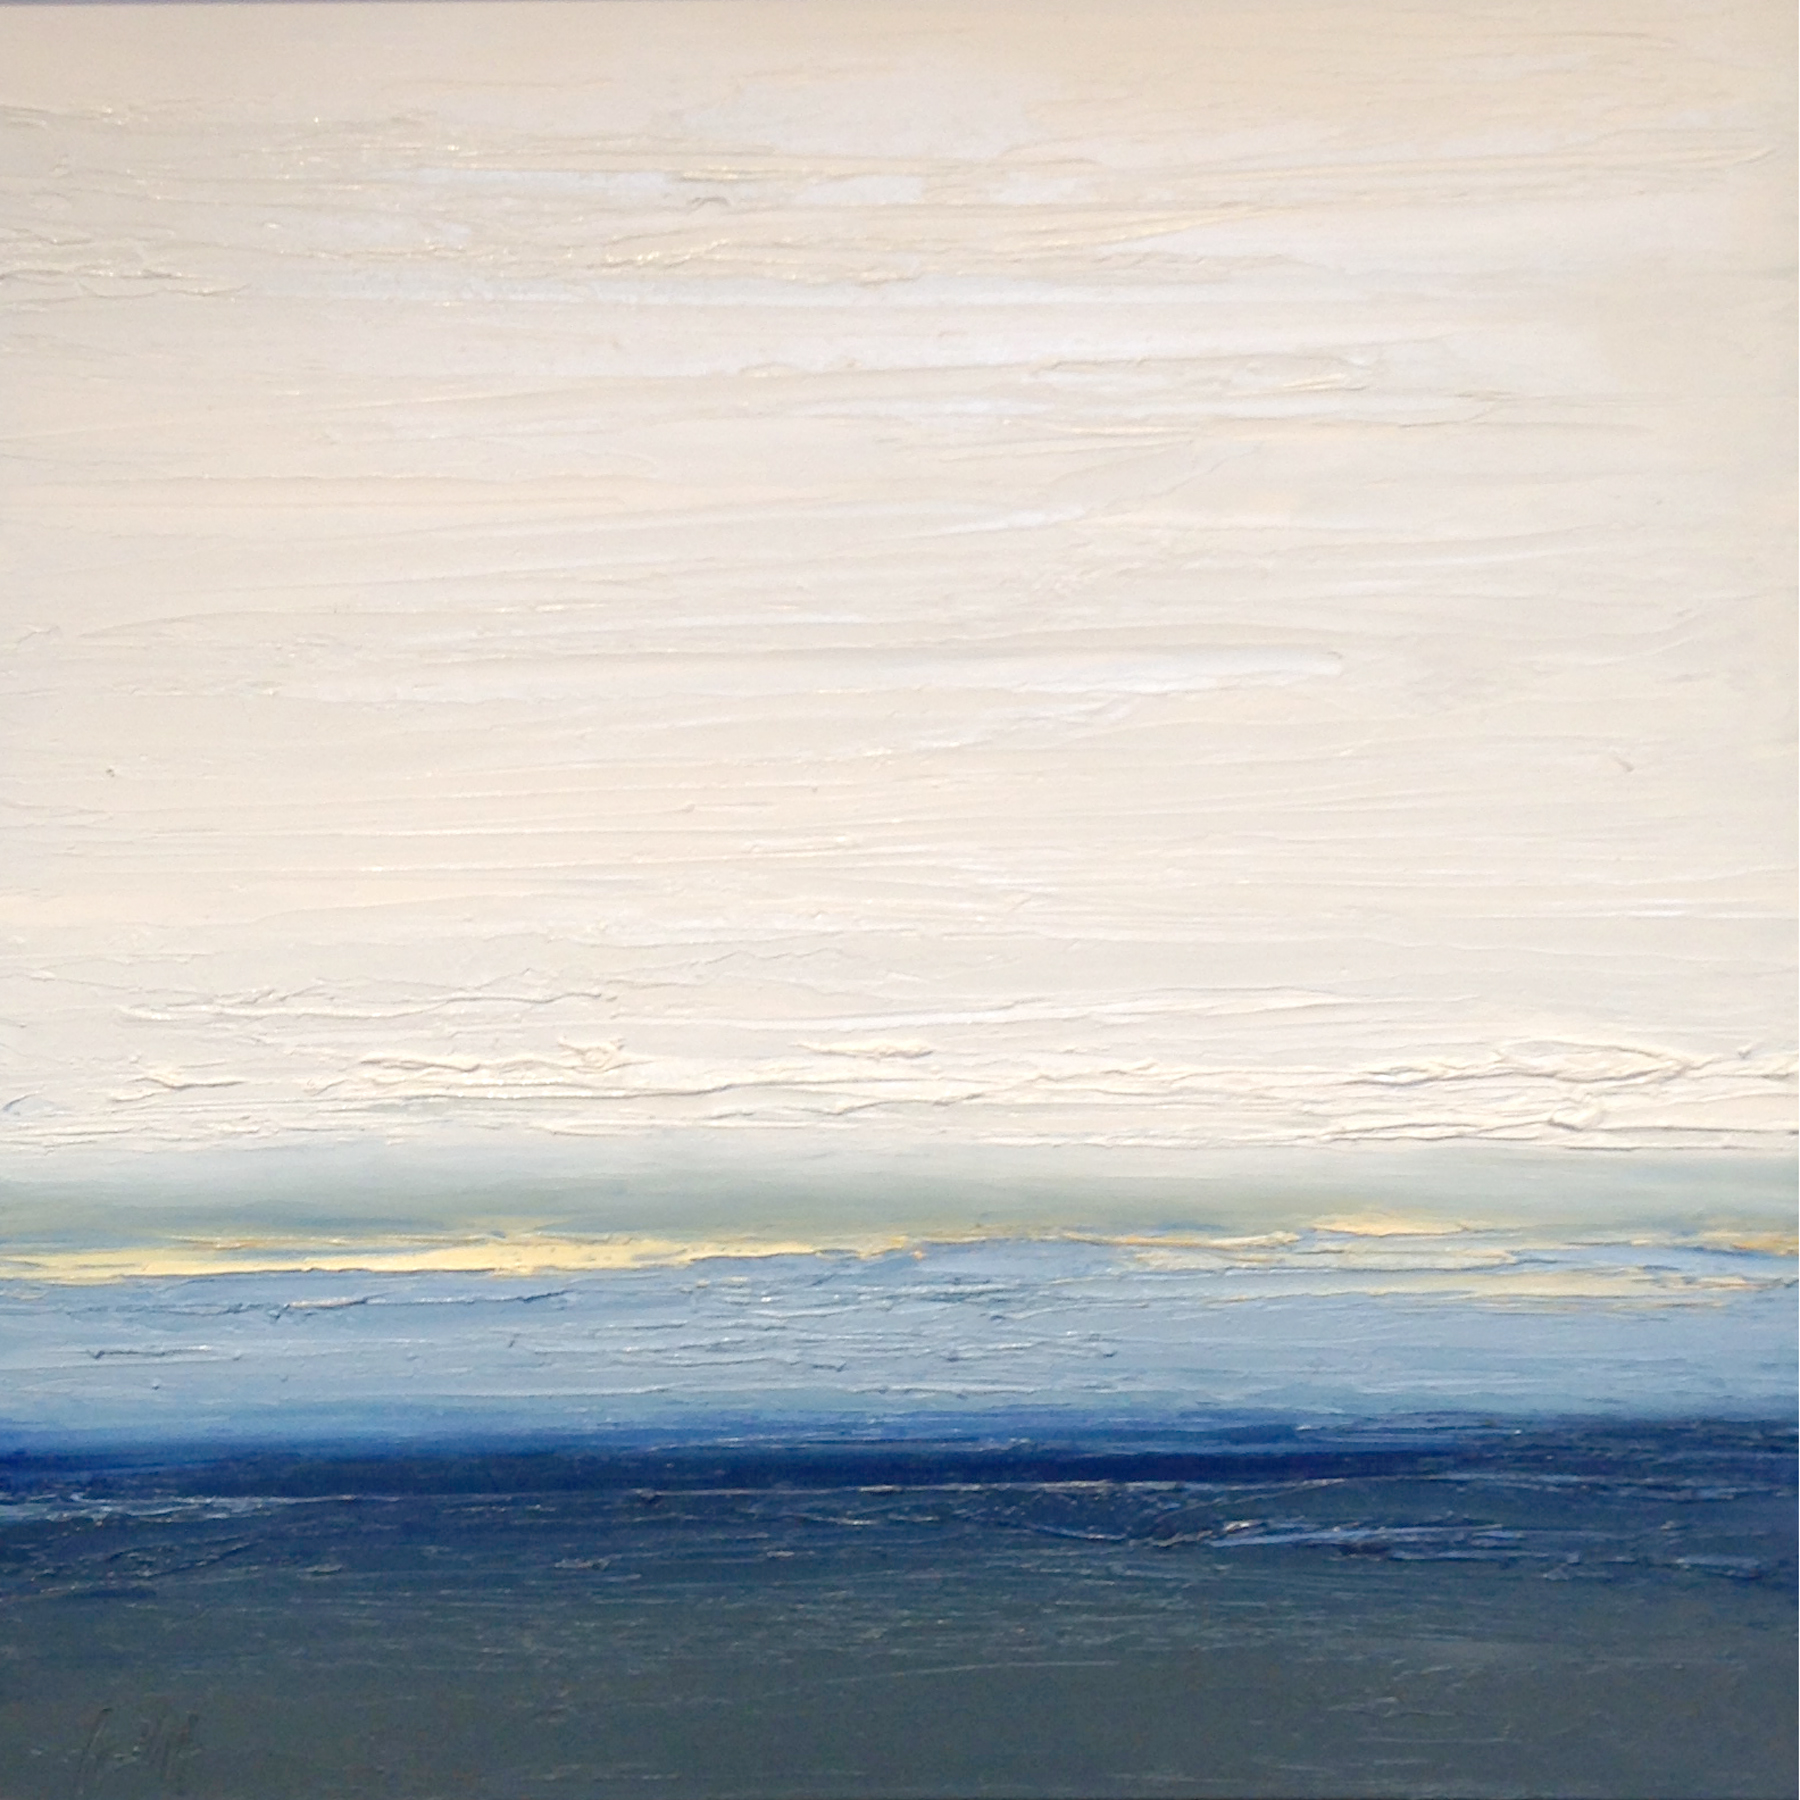 At The Horizon 3-21-2014, oil on board, 16 by 16 inches, 2014 - $1500 (sold)